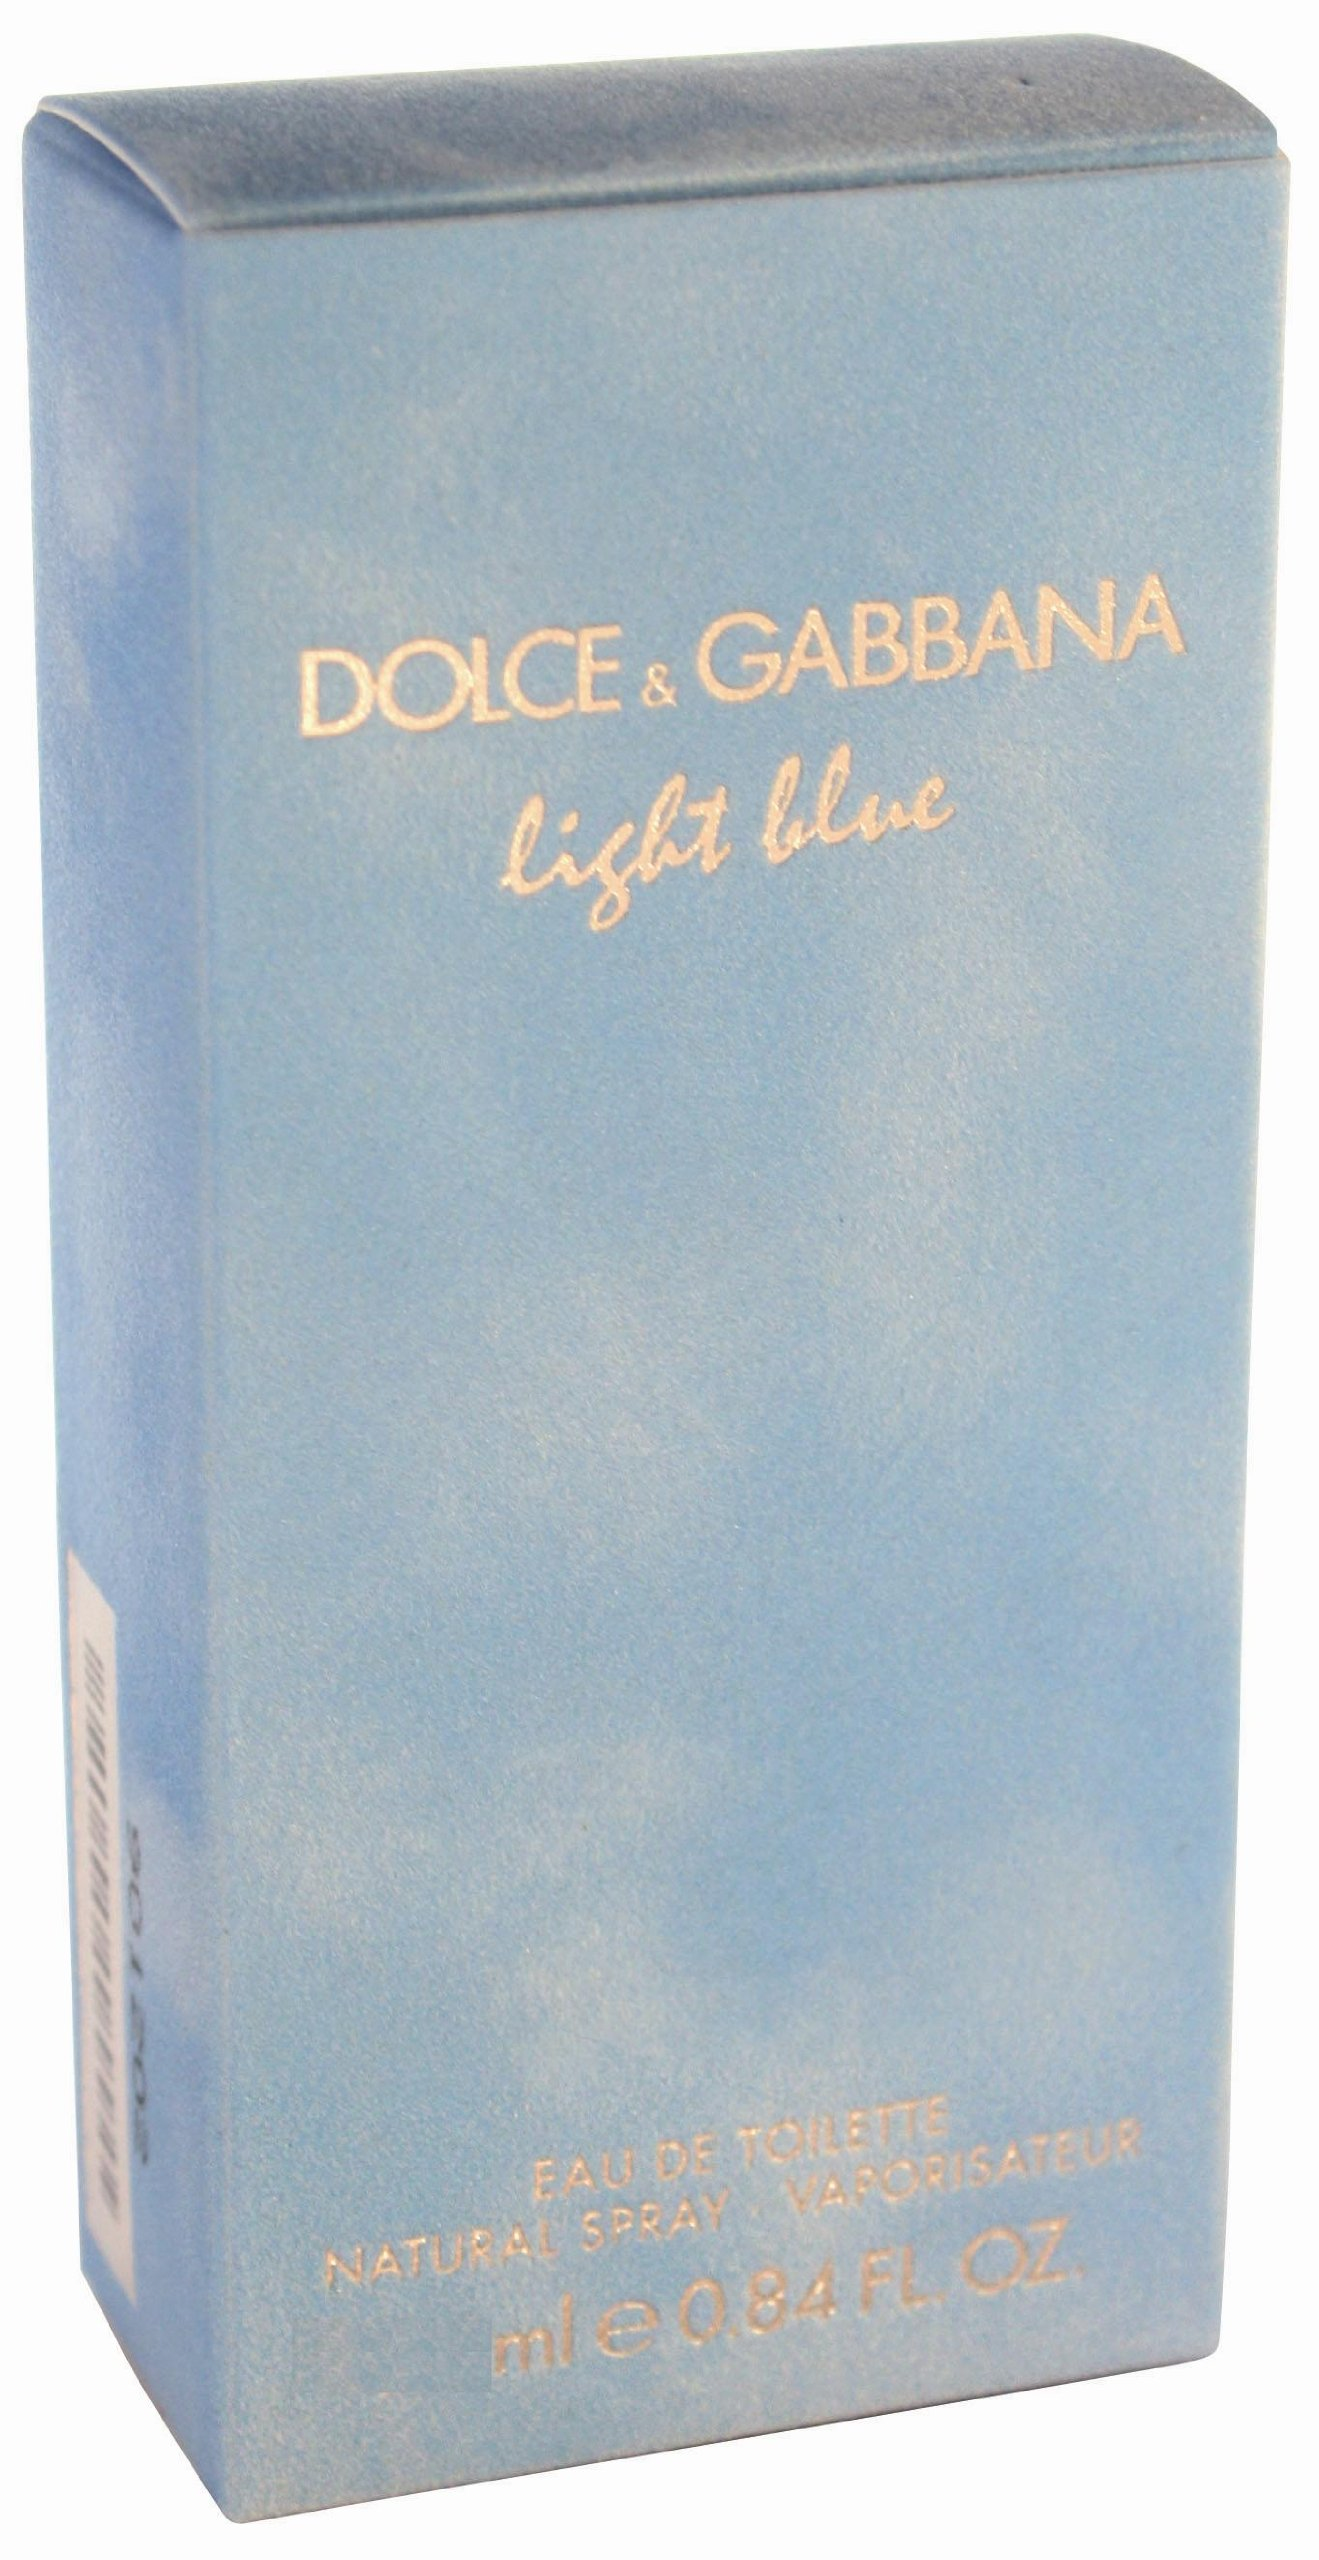 Dolce & Gabbana Light Blue By Dolce & Gabbana For Women. Eau De Toilette Spray 3.3 Oz (Packaging May Vary) by Dolce & Gabbana (Image #4)